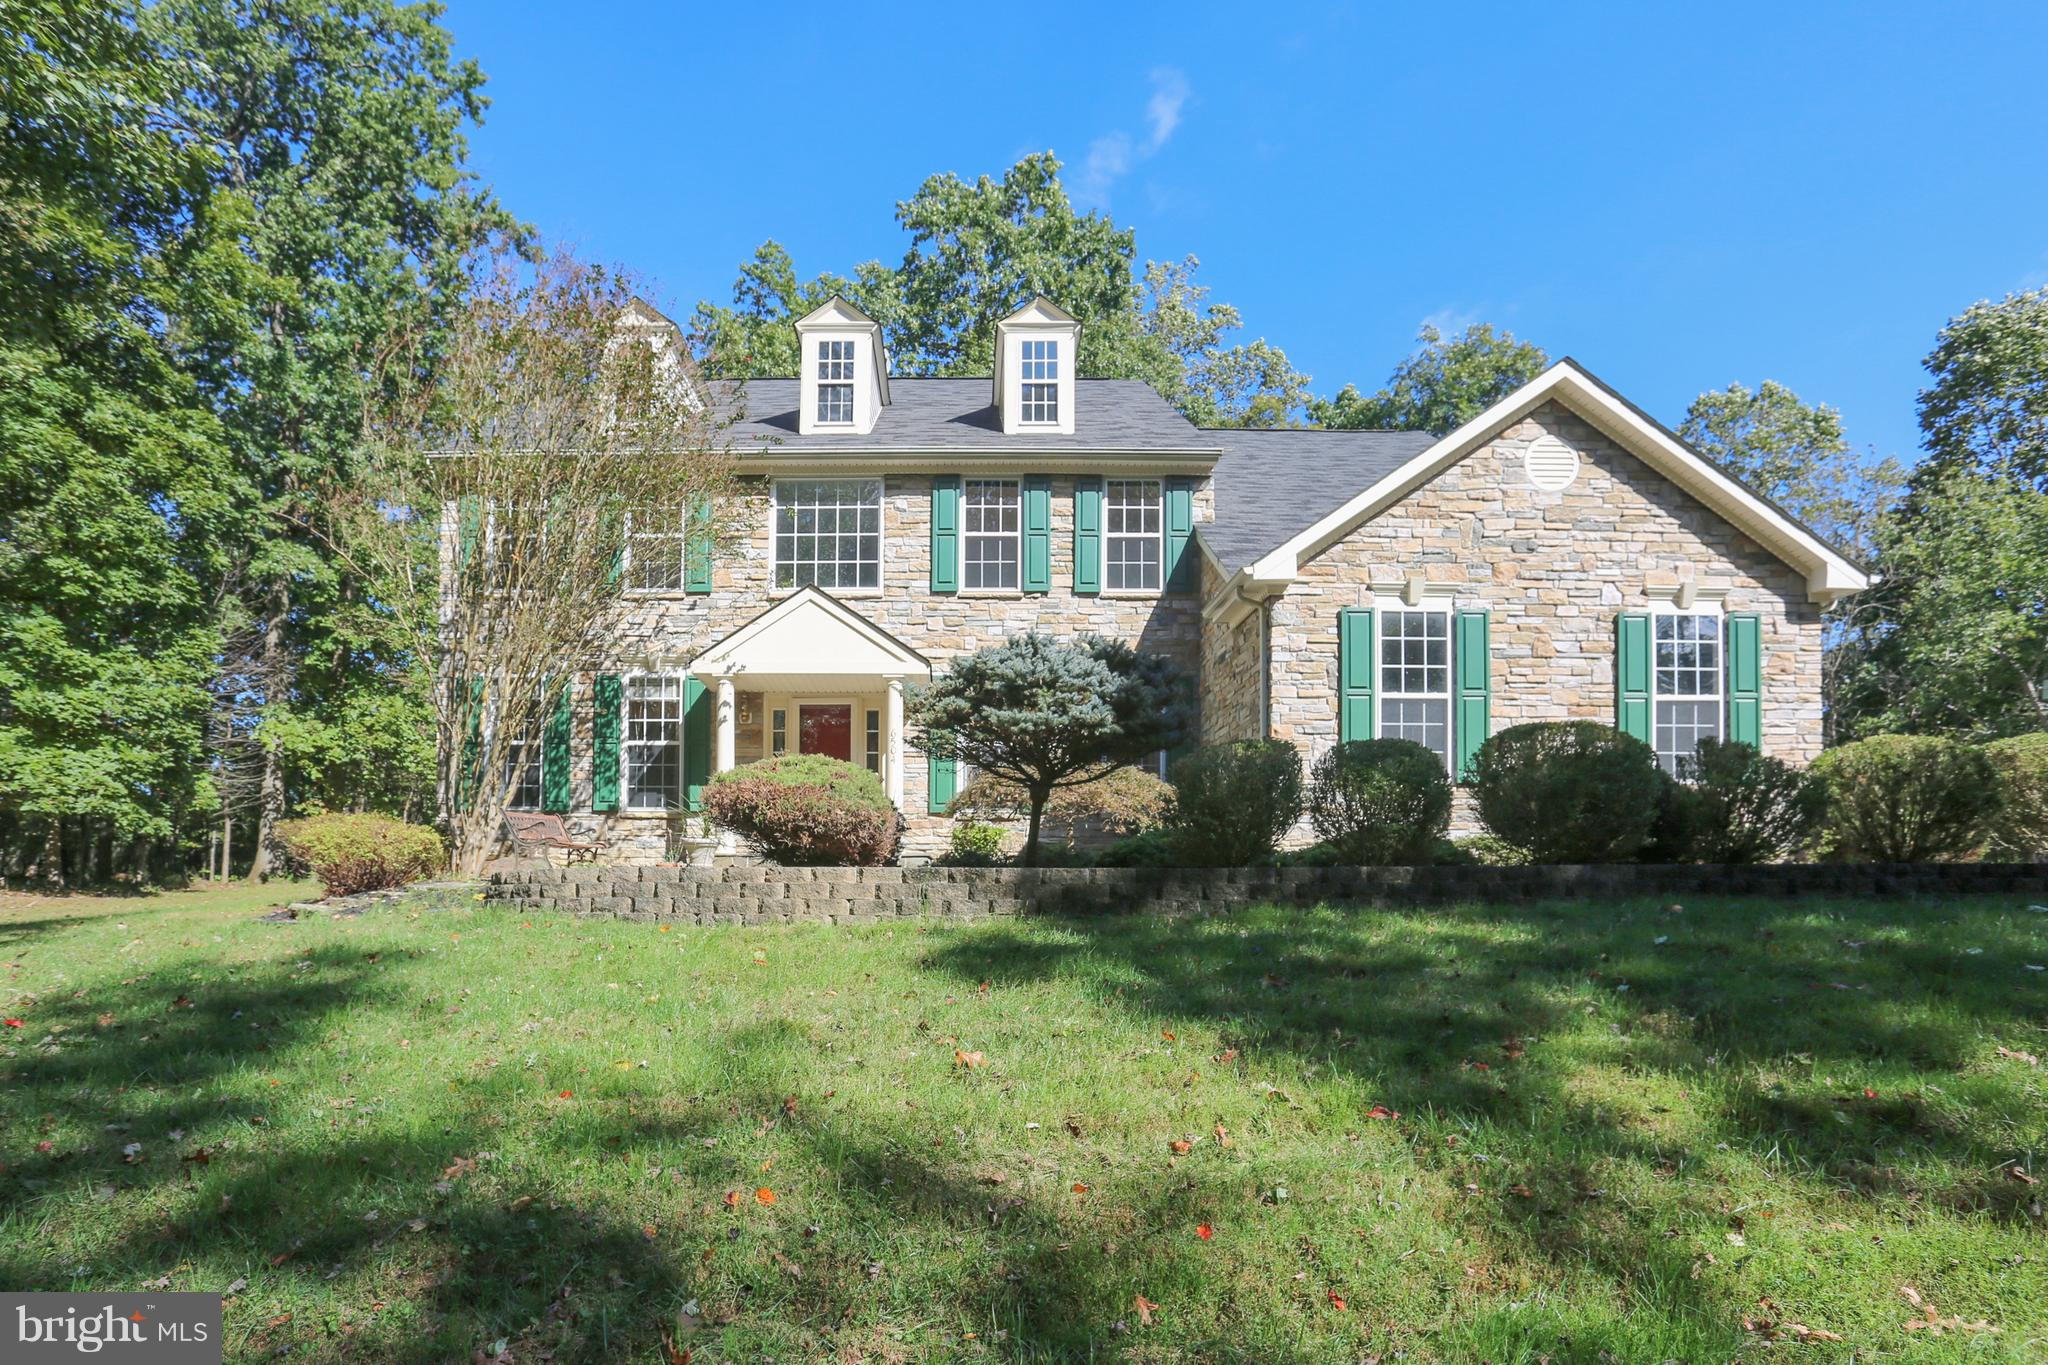 6504 MINK HOLLOW ROAD, HIGHLAND, MD 20777